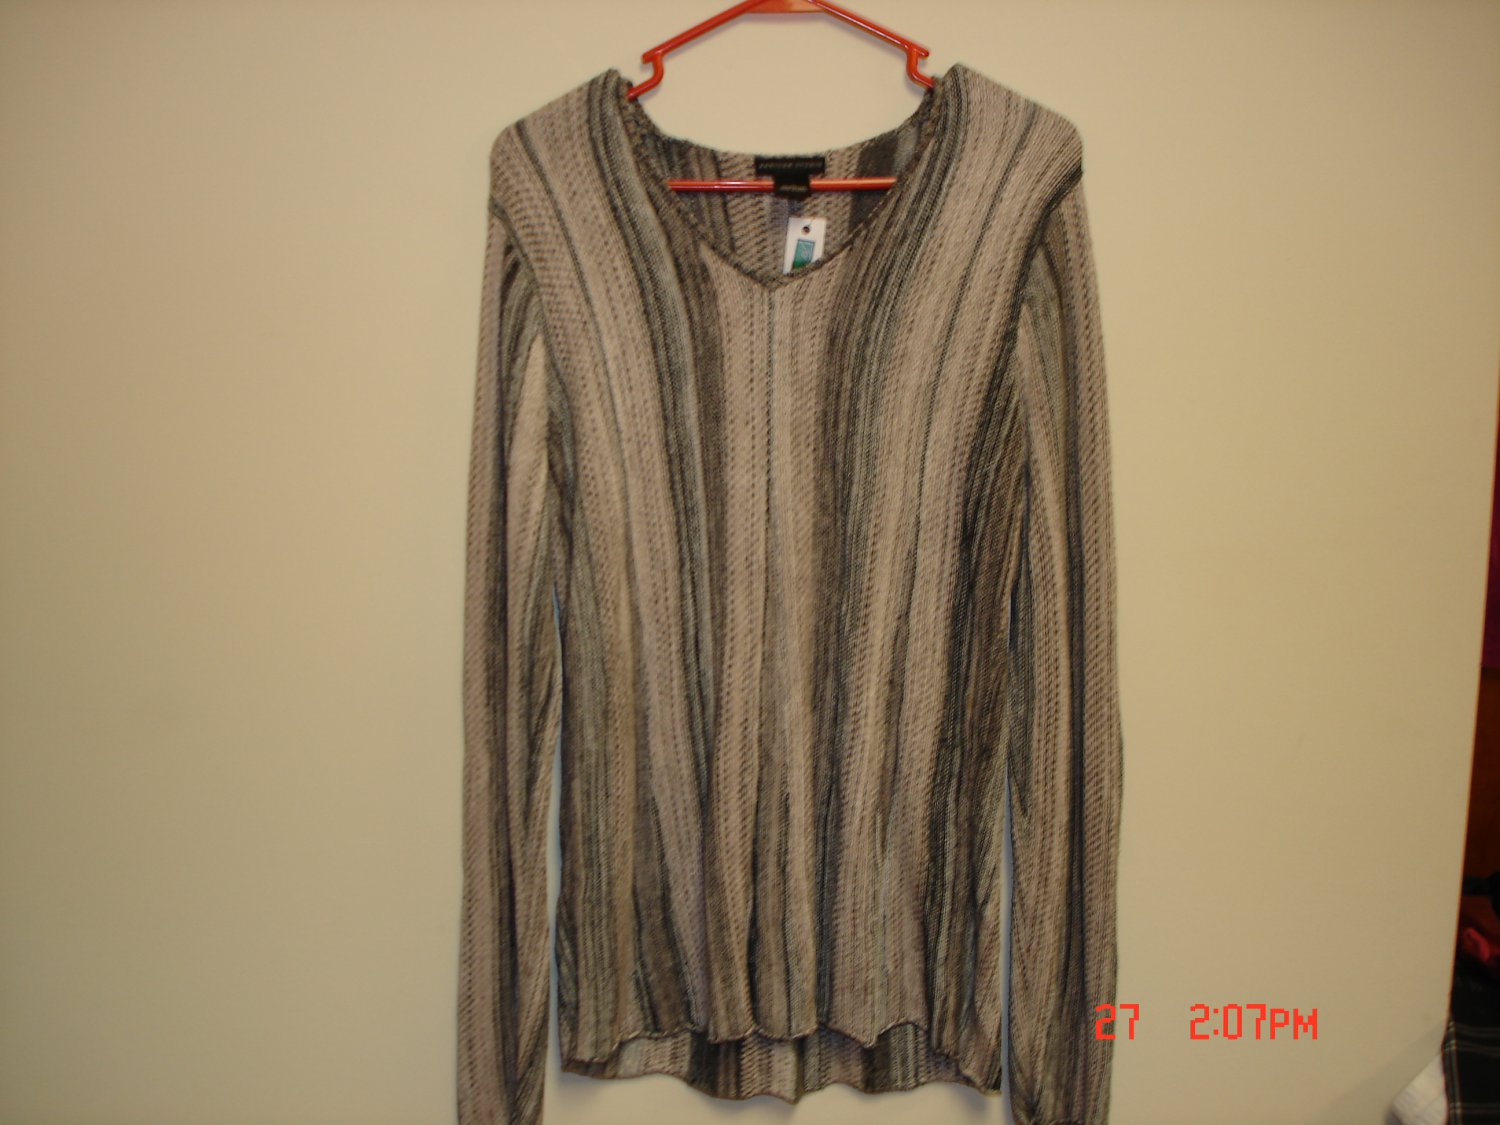 Sweater, Size XL